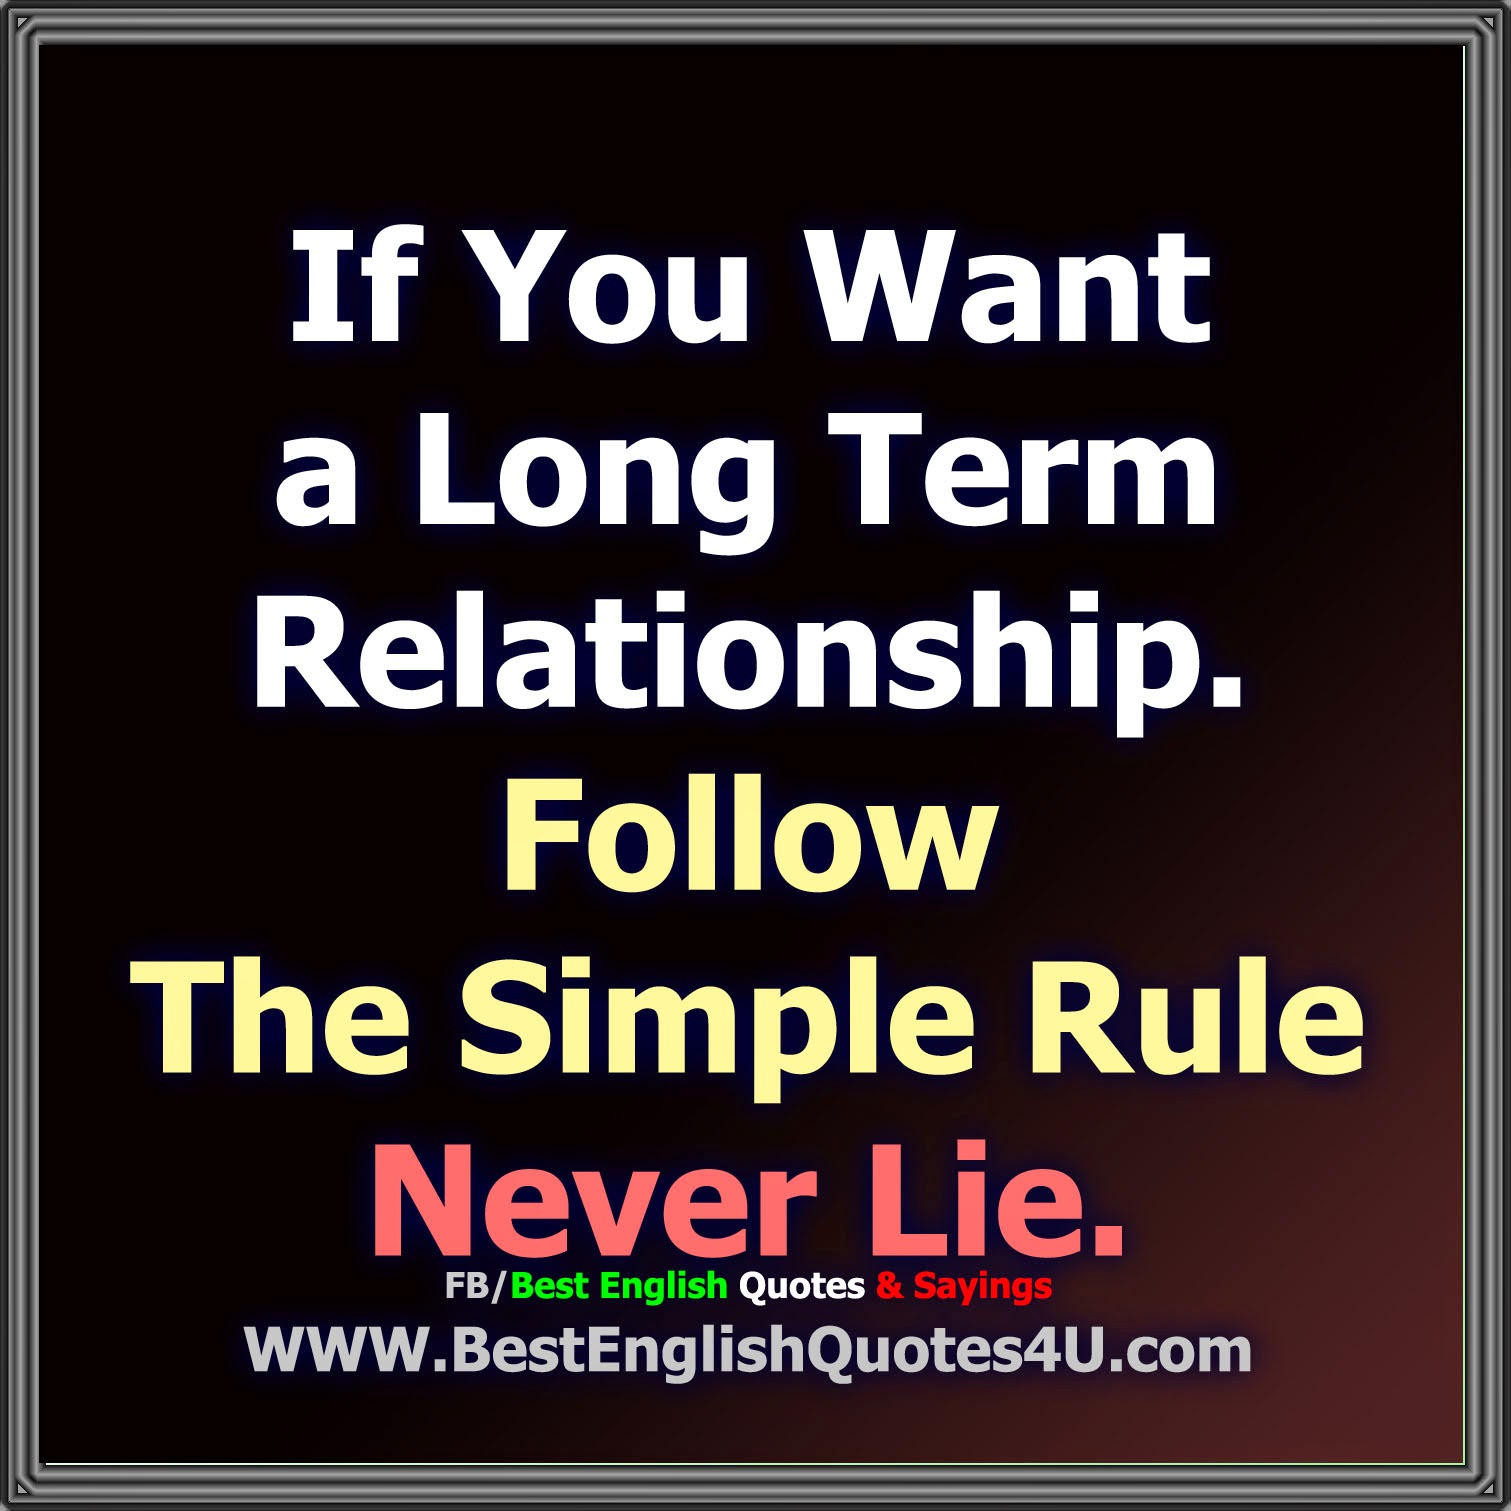 if you want a long term relationship best 39 english